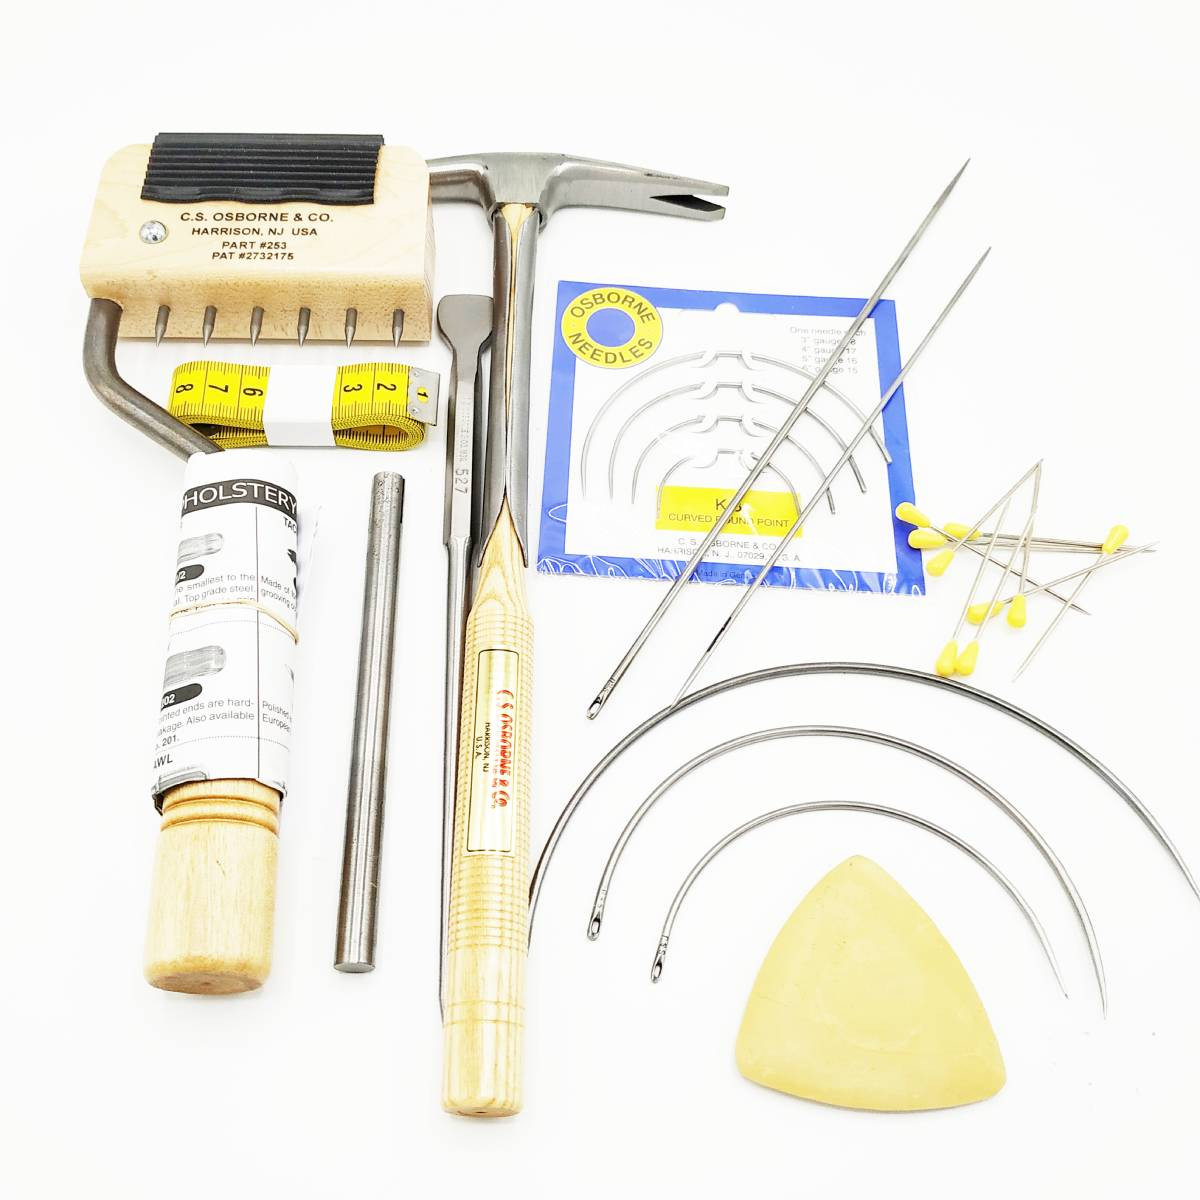 Kit outils tapissiers : Garnissage Traditionnel